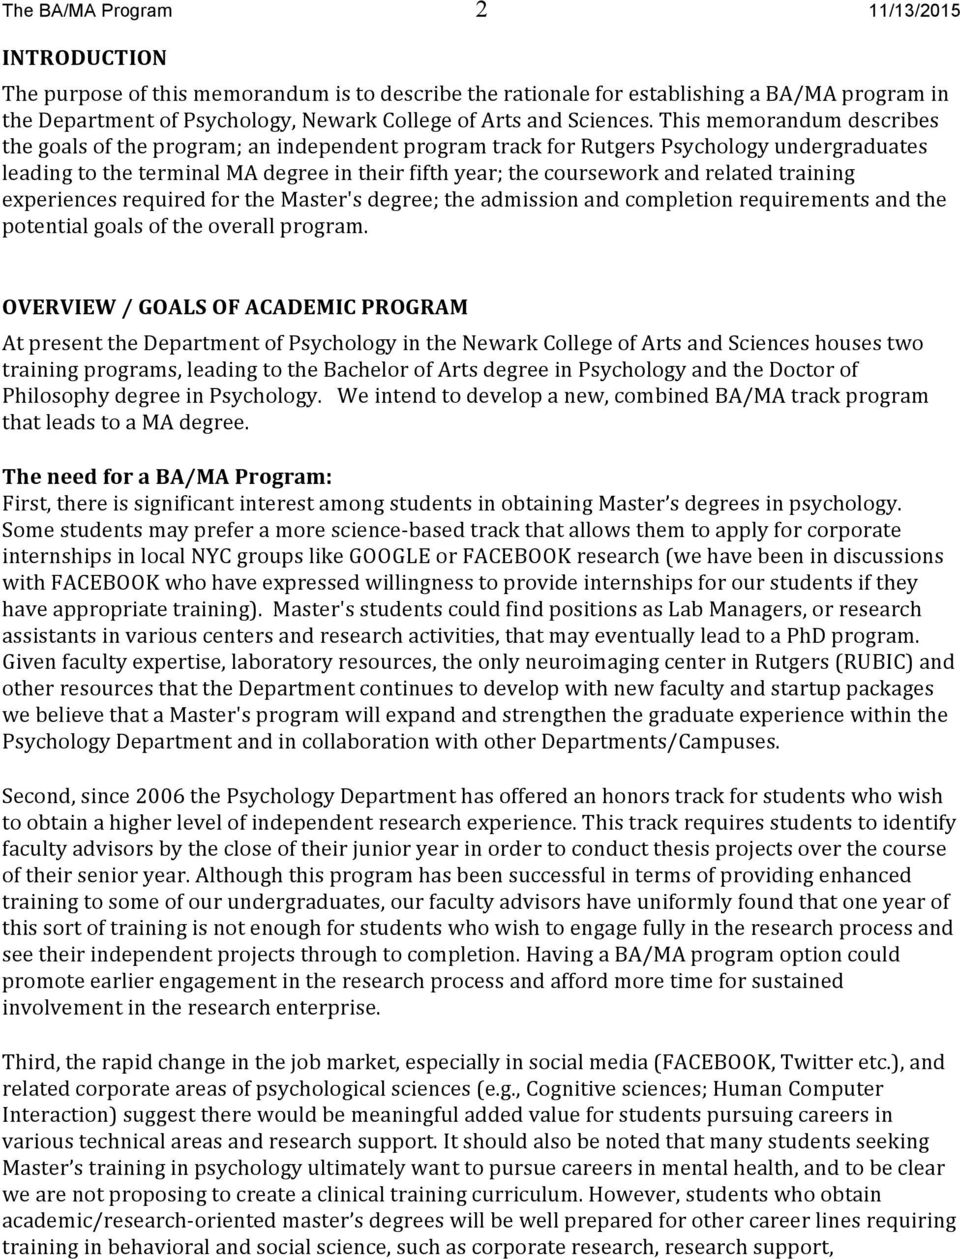 This memorandum describes the goals of the program; an independent program track for Rutgers Psychology undergraduates leading to the terminal MA degree in their fifth year; the coursework and